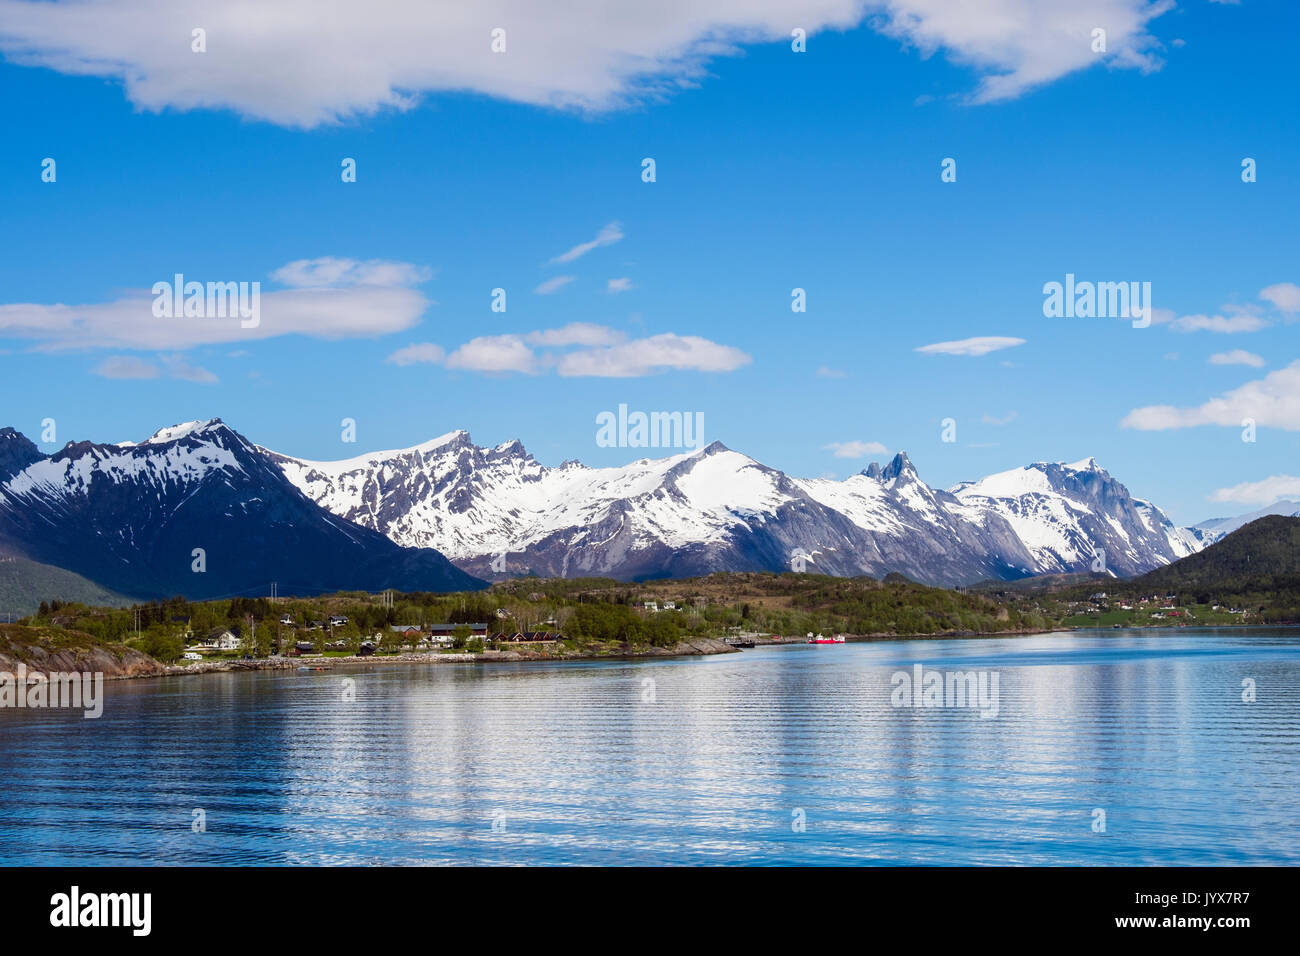 Offshore view to snowcapped mountains and campsite beside Arhaugfjorden fjord on Norwegian north west coast in summer. Furoy, Meløy, Nordland, Norway - Stock Image